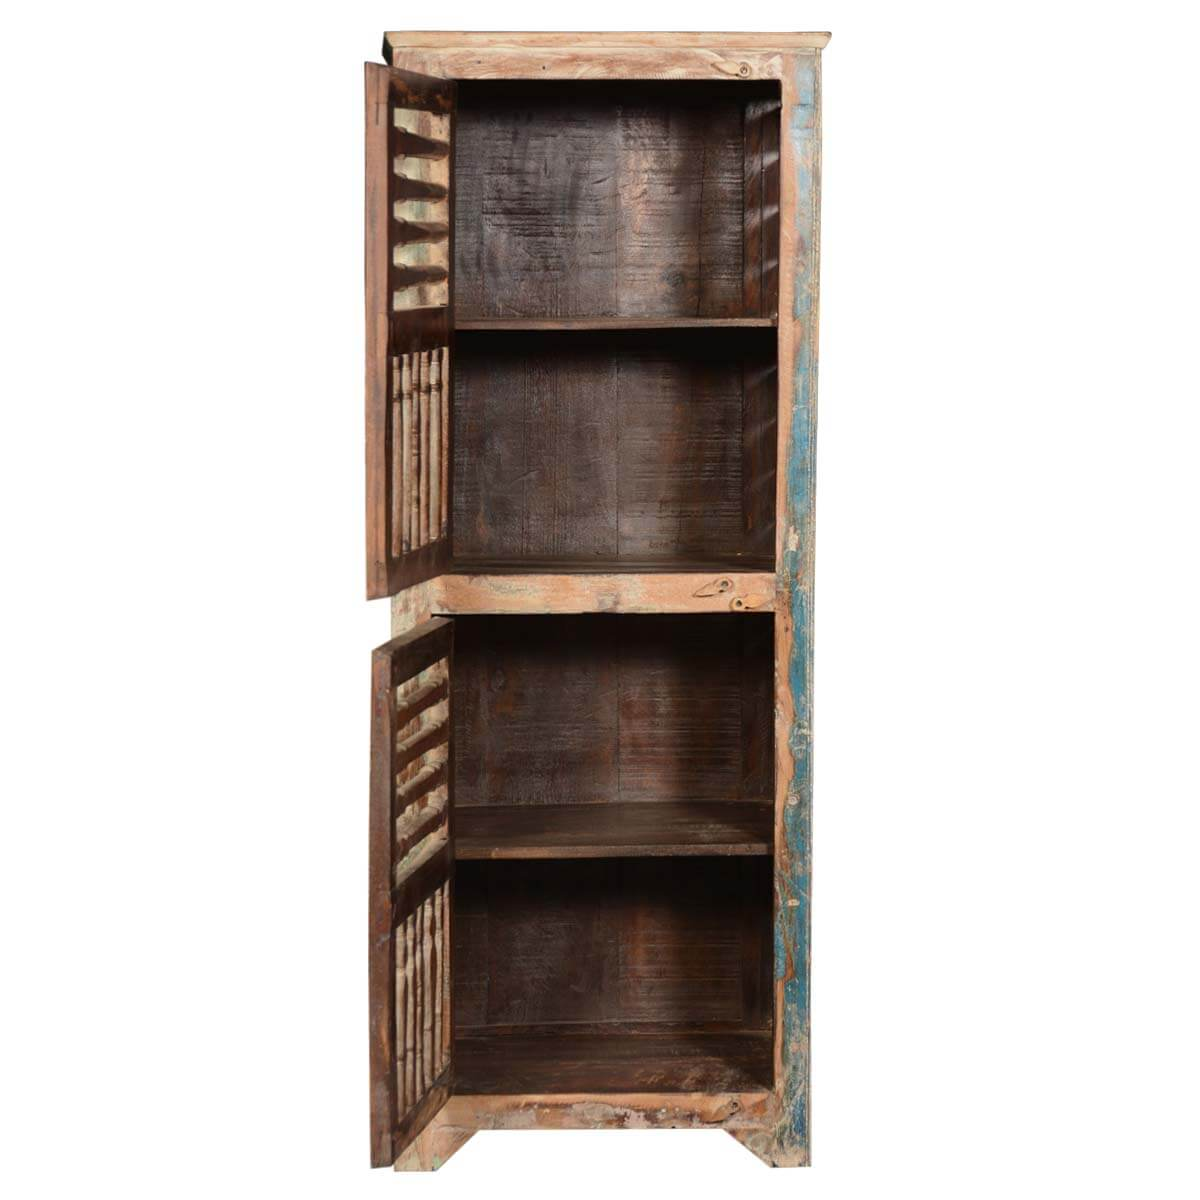 Rustic Reclaimed Wood Shutter Door 60 Narrow Kitchen Storage Cabinet